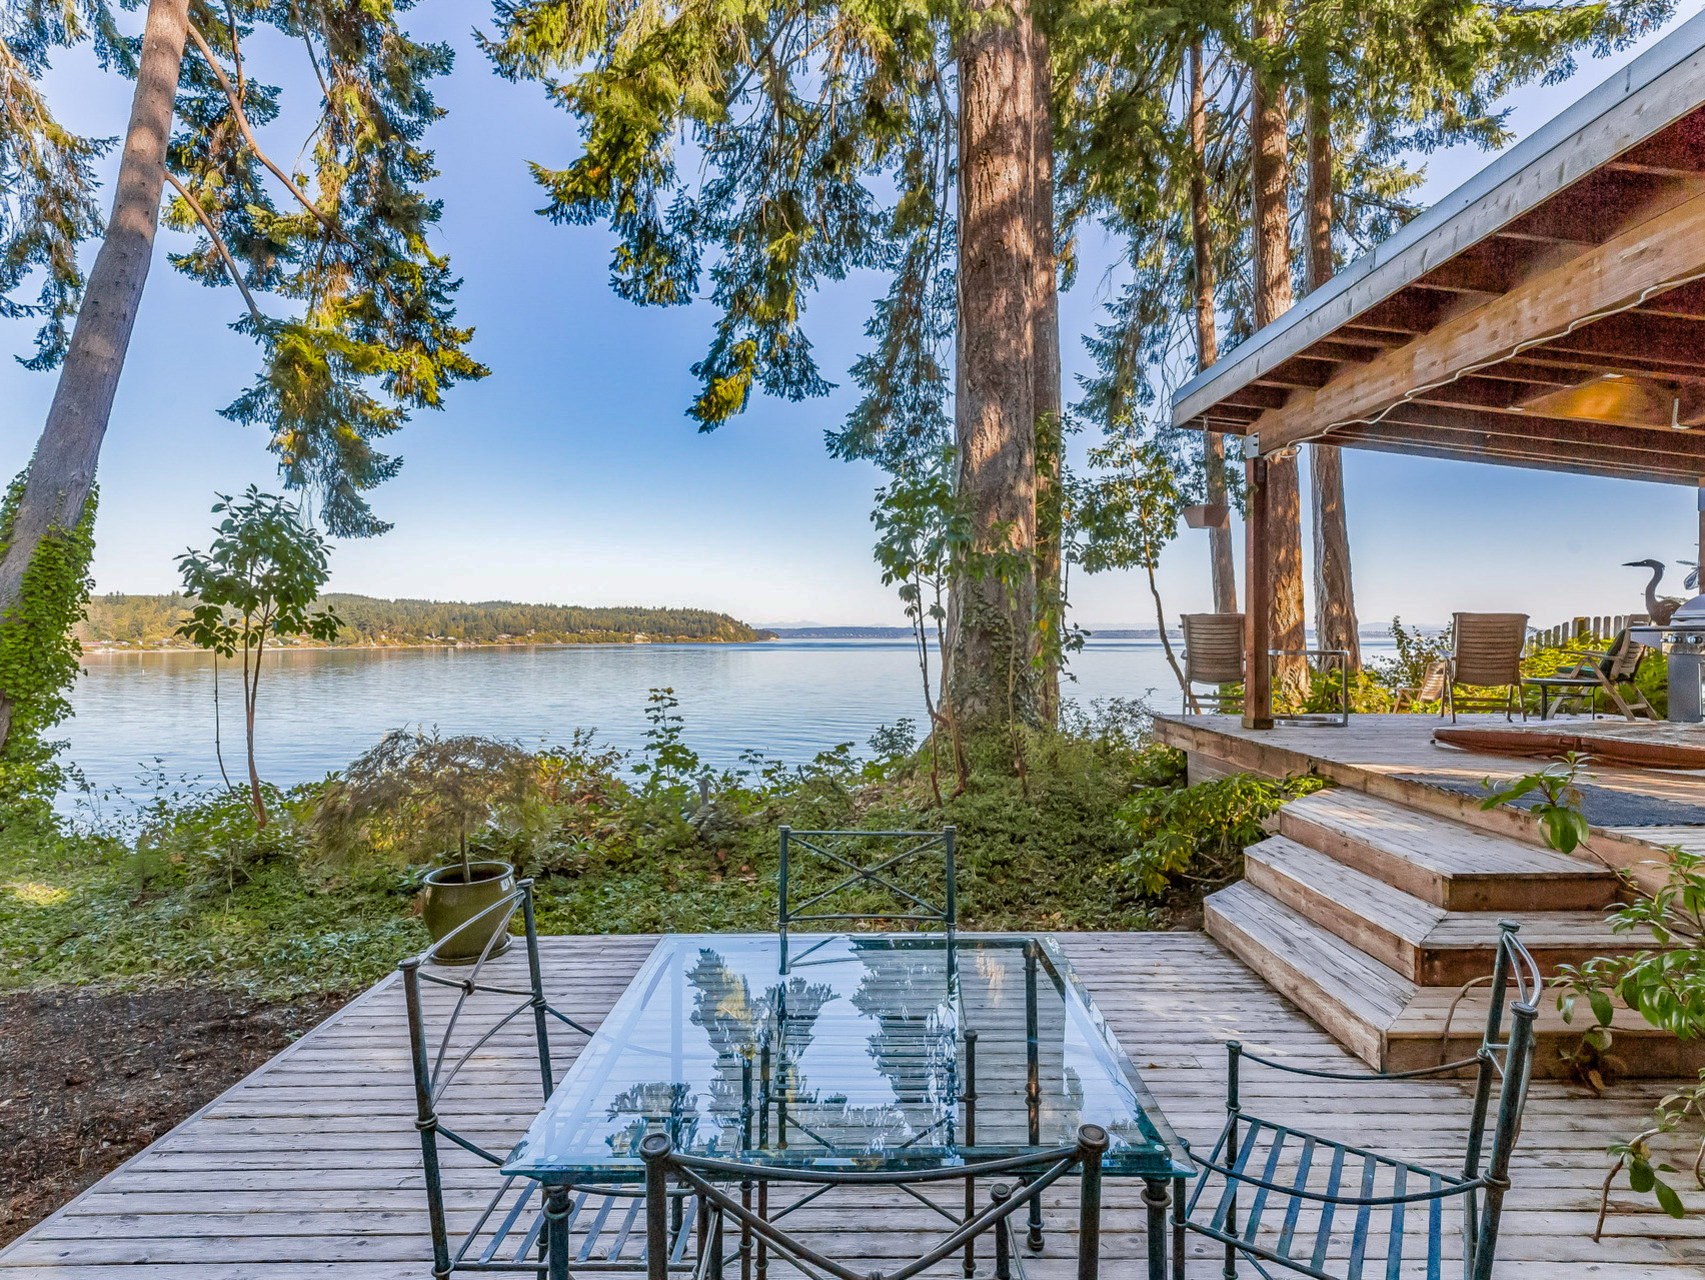 Waterfront Pu Sound View Home in Suquamish for sale